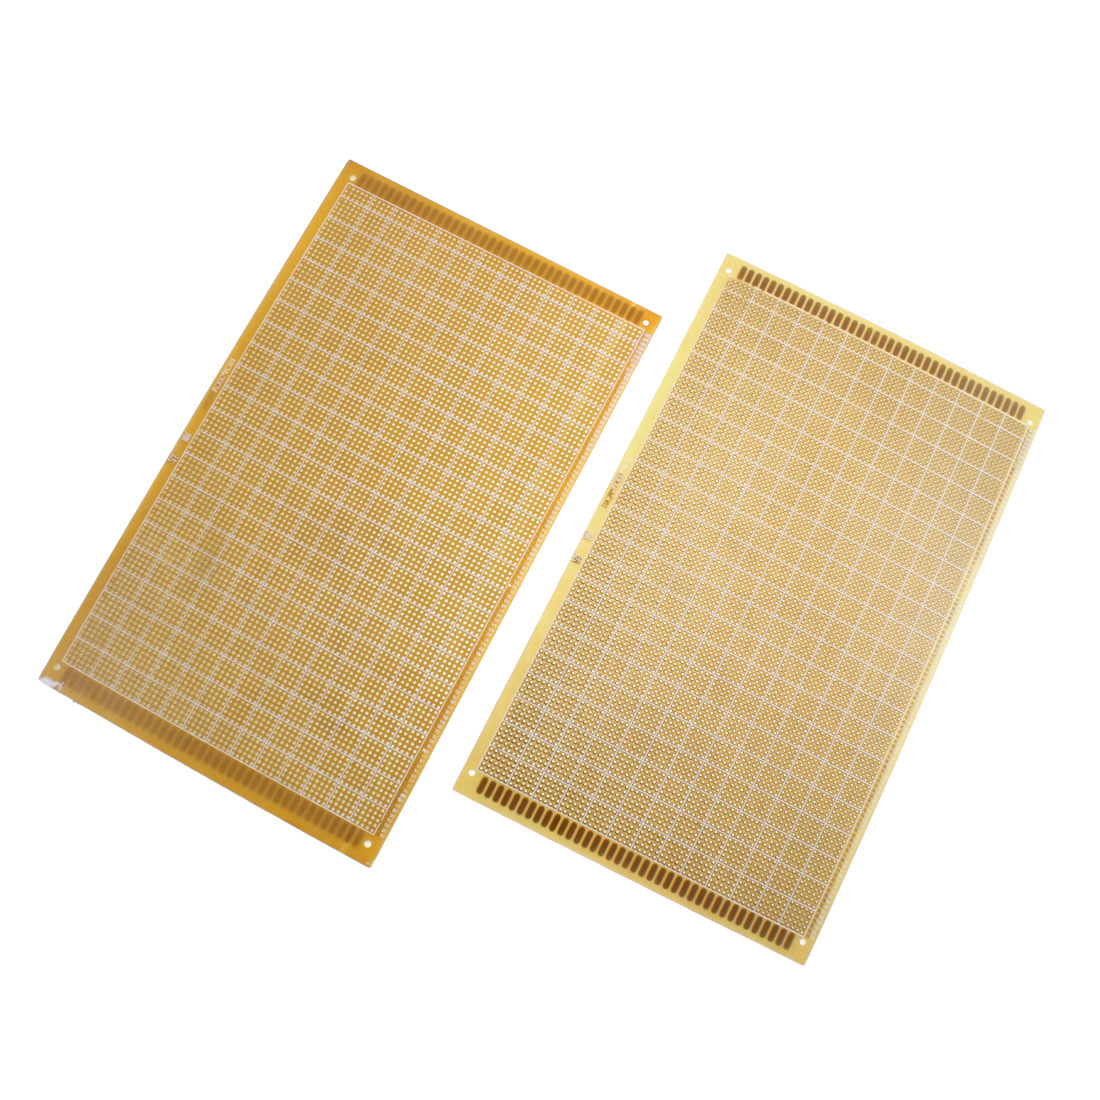 2Pcs 18 x 30cm Electronic DIY Prototype Paper Single Side PCB Board Brown